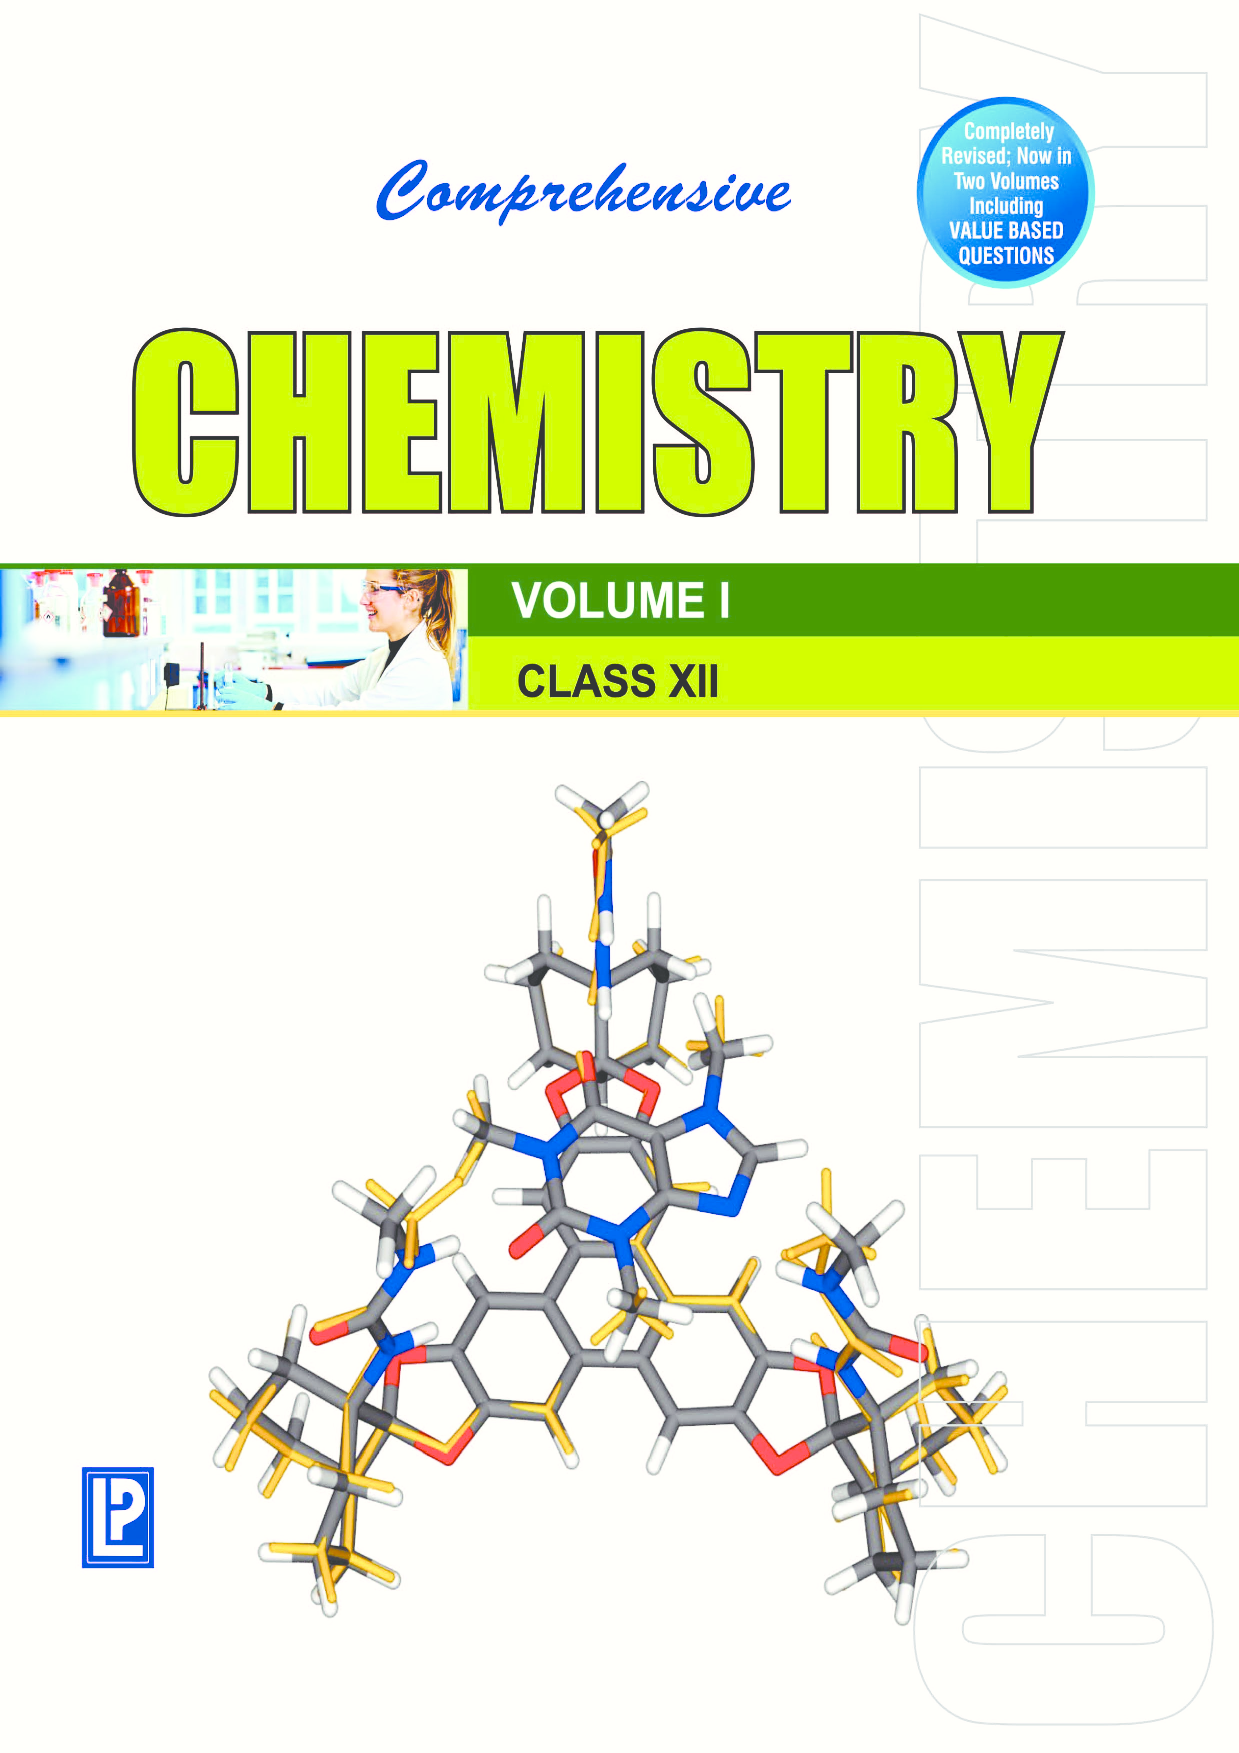 Comprehensive Chemistry XII (Volume I And II) - Page 1